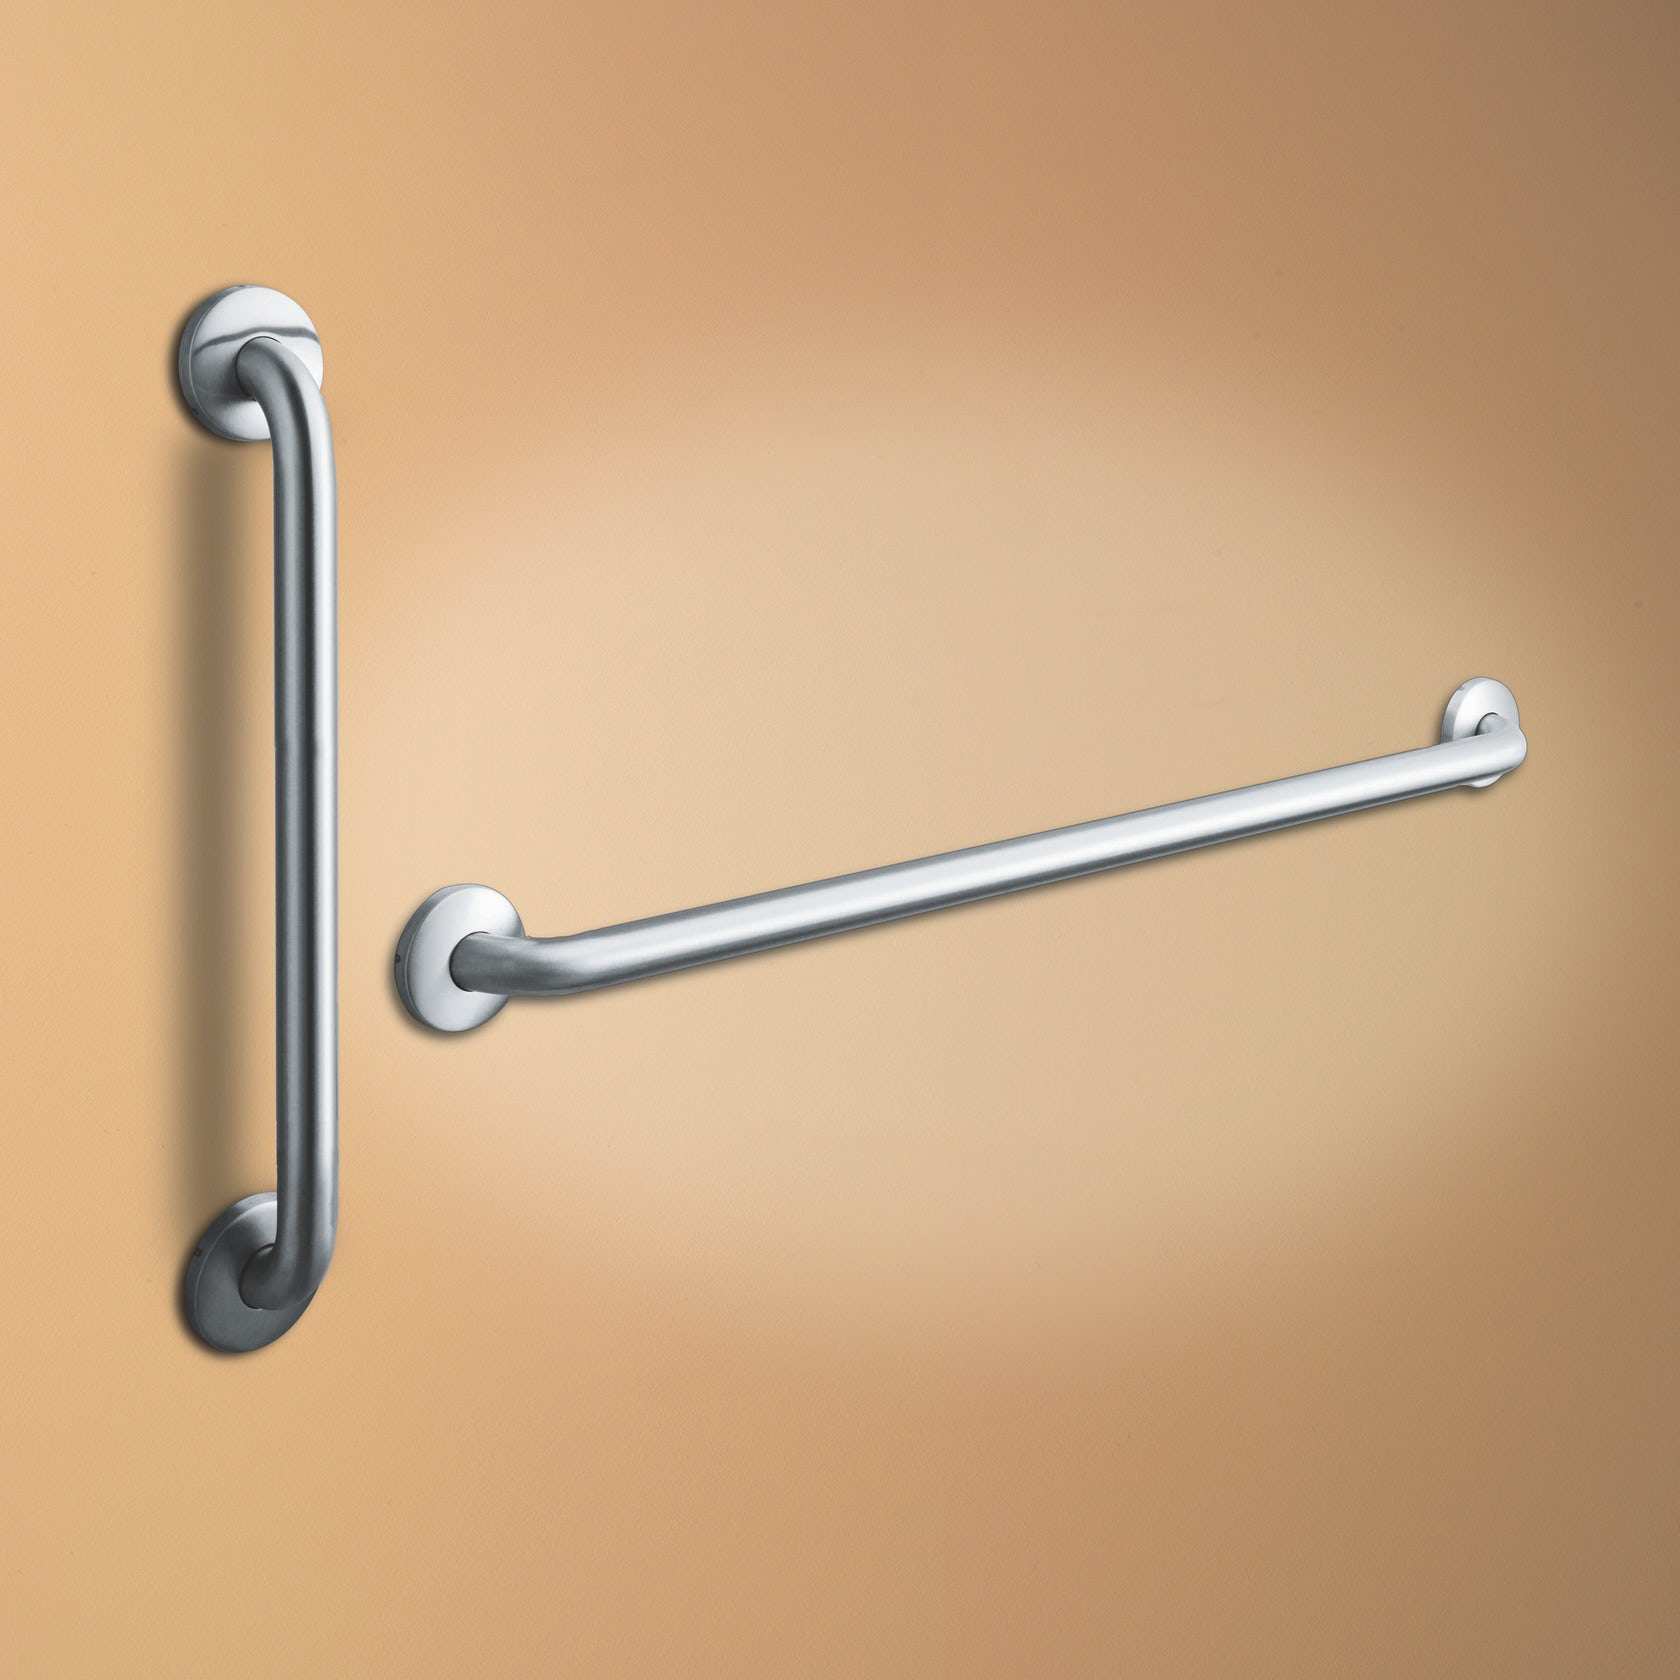 Grab Bars Snap Flange And Other Mounting Options